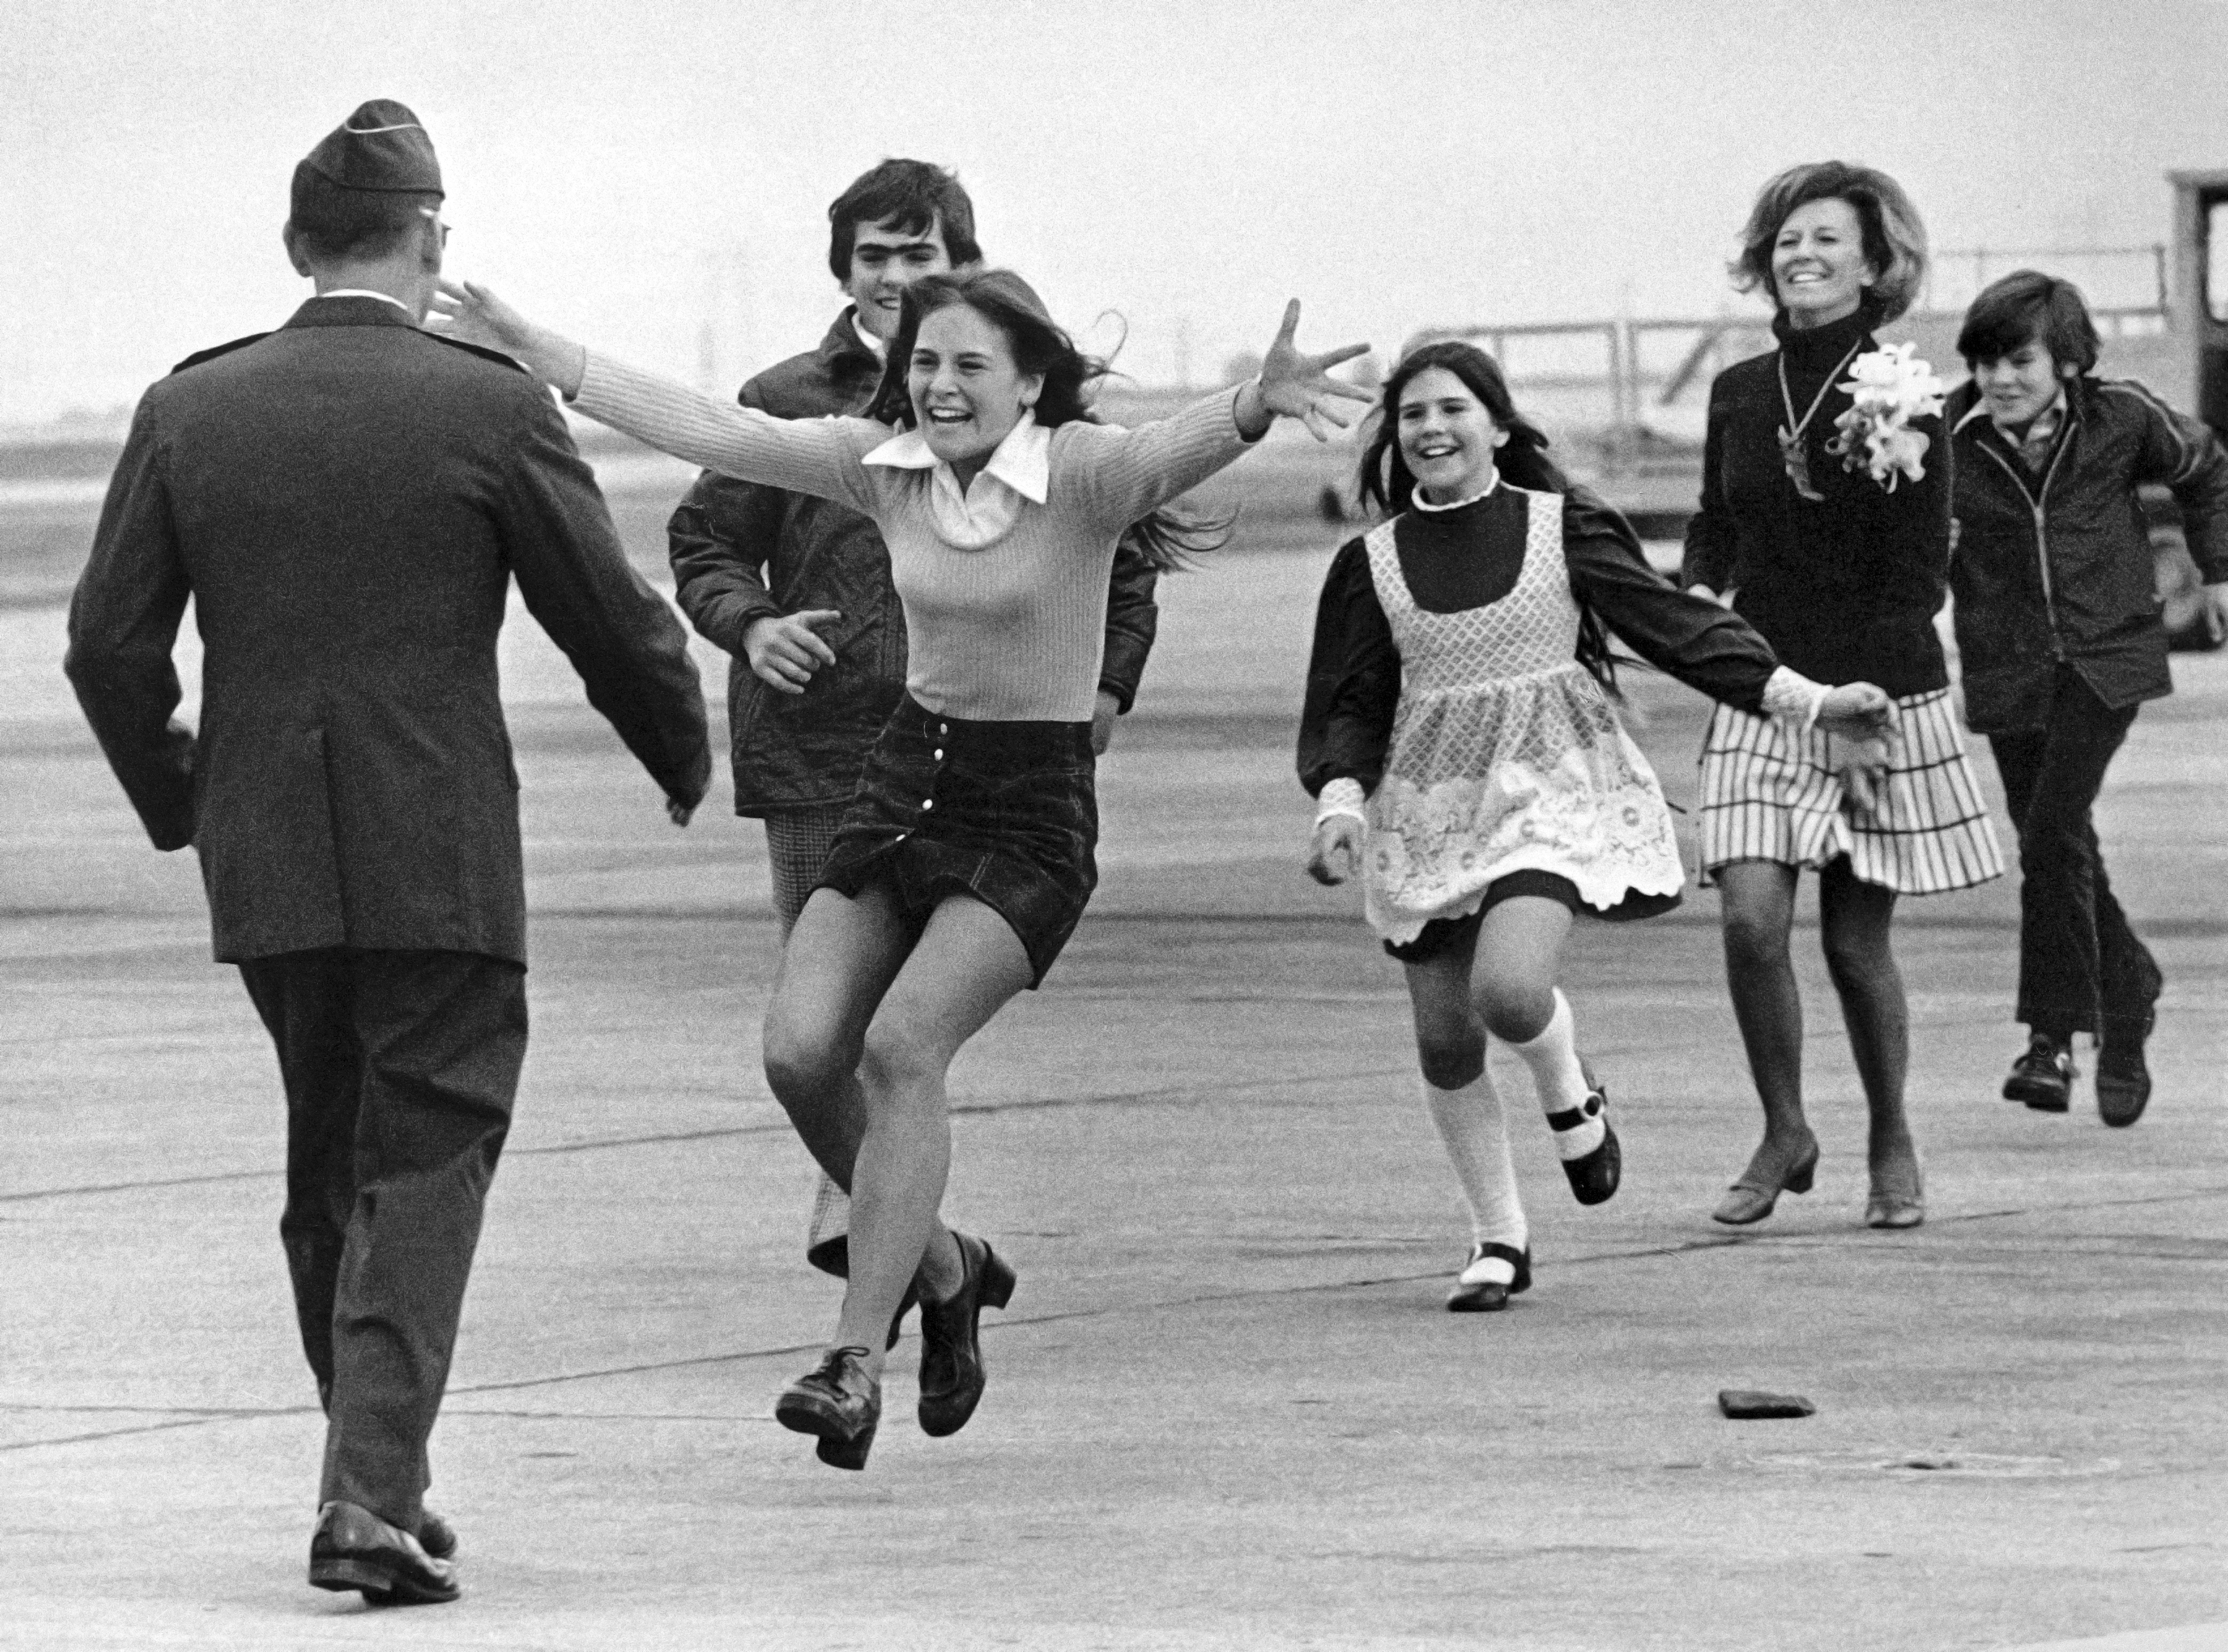 Released prisoner of war Lt. Col. Robert L. Stirm is greeted by his family at Travis Air Force Base in Fairfield, Calif., as he returns home from the Vietnam War, March 17, 1973. Leading is Stirm's daughter Lori, 15, followed by son Robert, 14; daughter Cynthia, 11; wife Loretta and son Roger, 12. Stirm was held more than five years after his plane was shot down over North Vietnam in 1968. (AP Photo/Sal Veder)